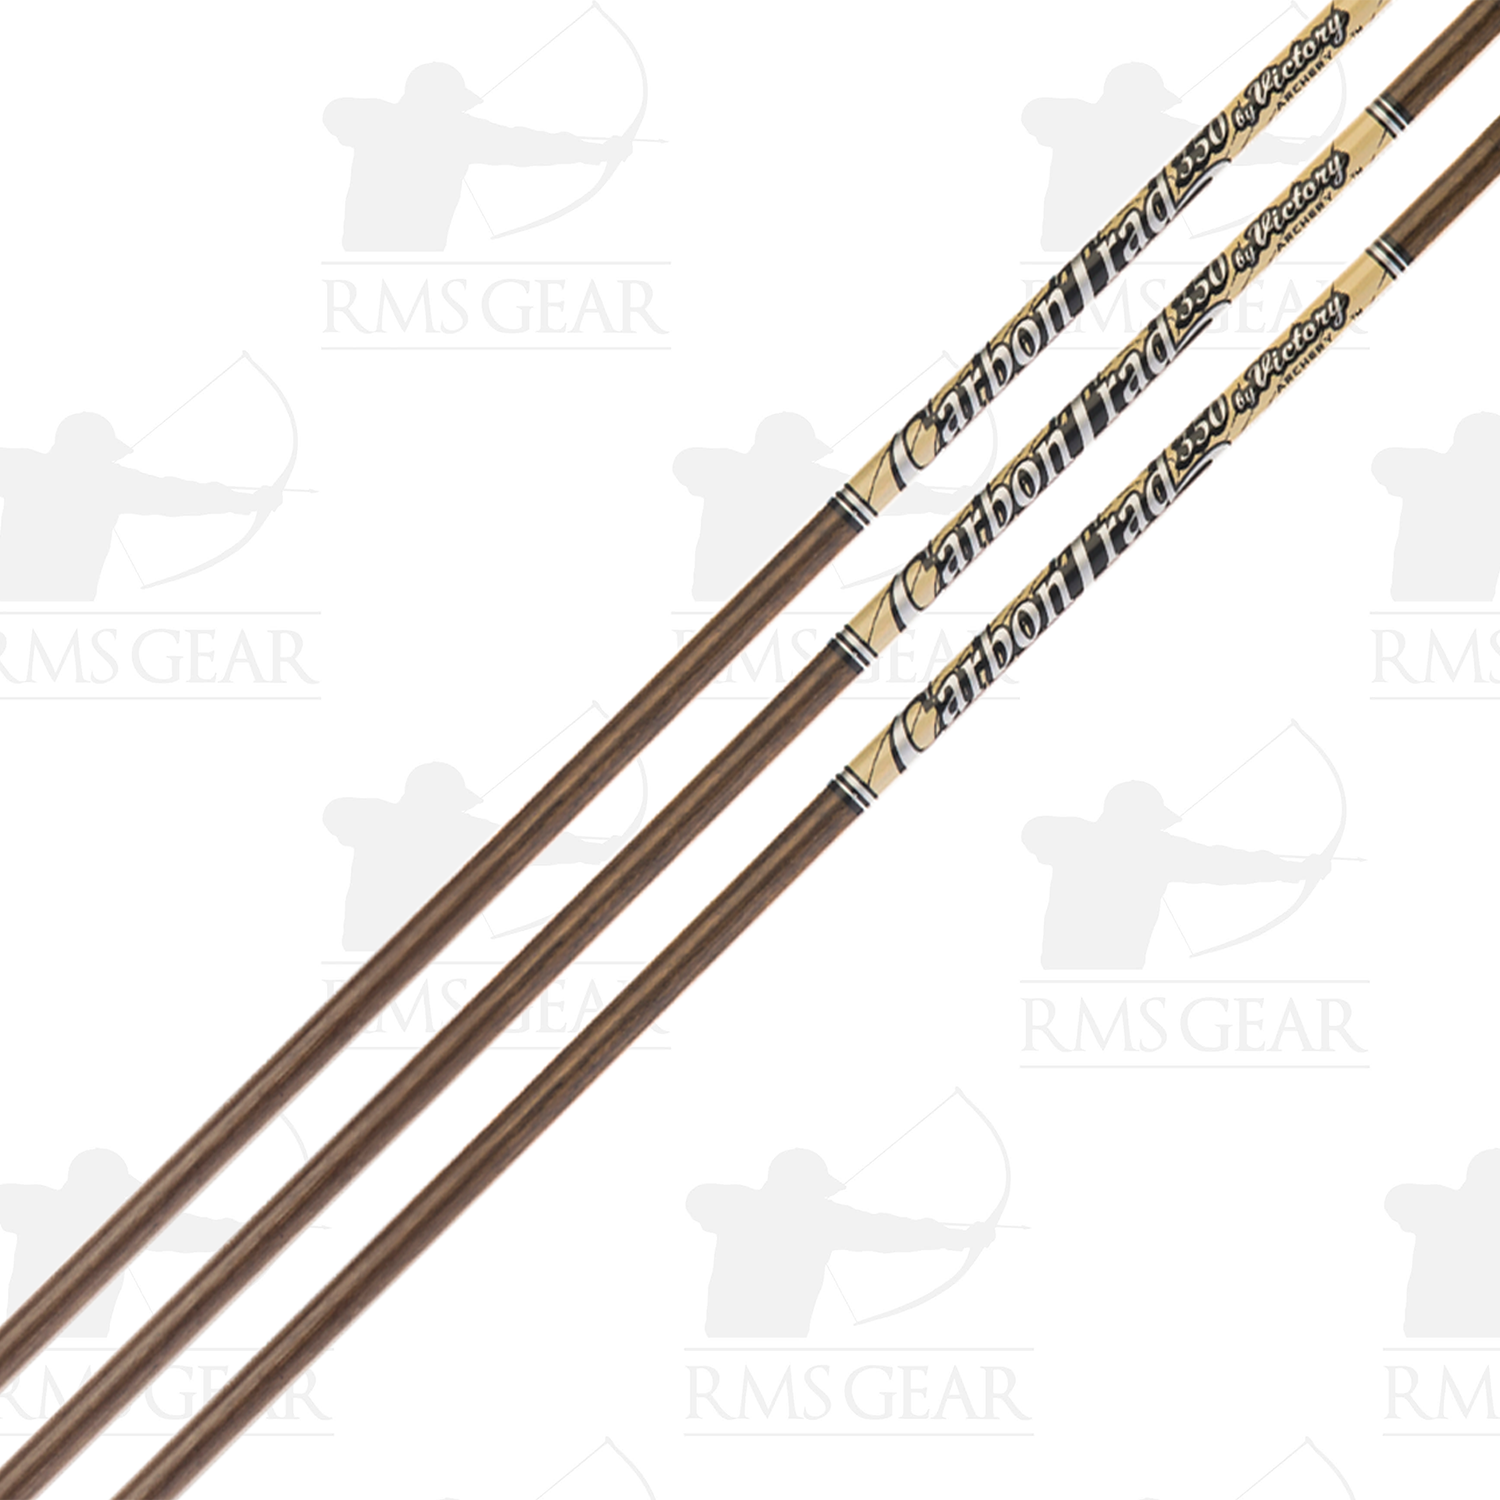 Victory Carbon Trad Arrow Shafts